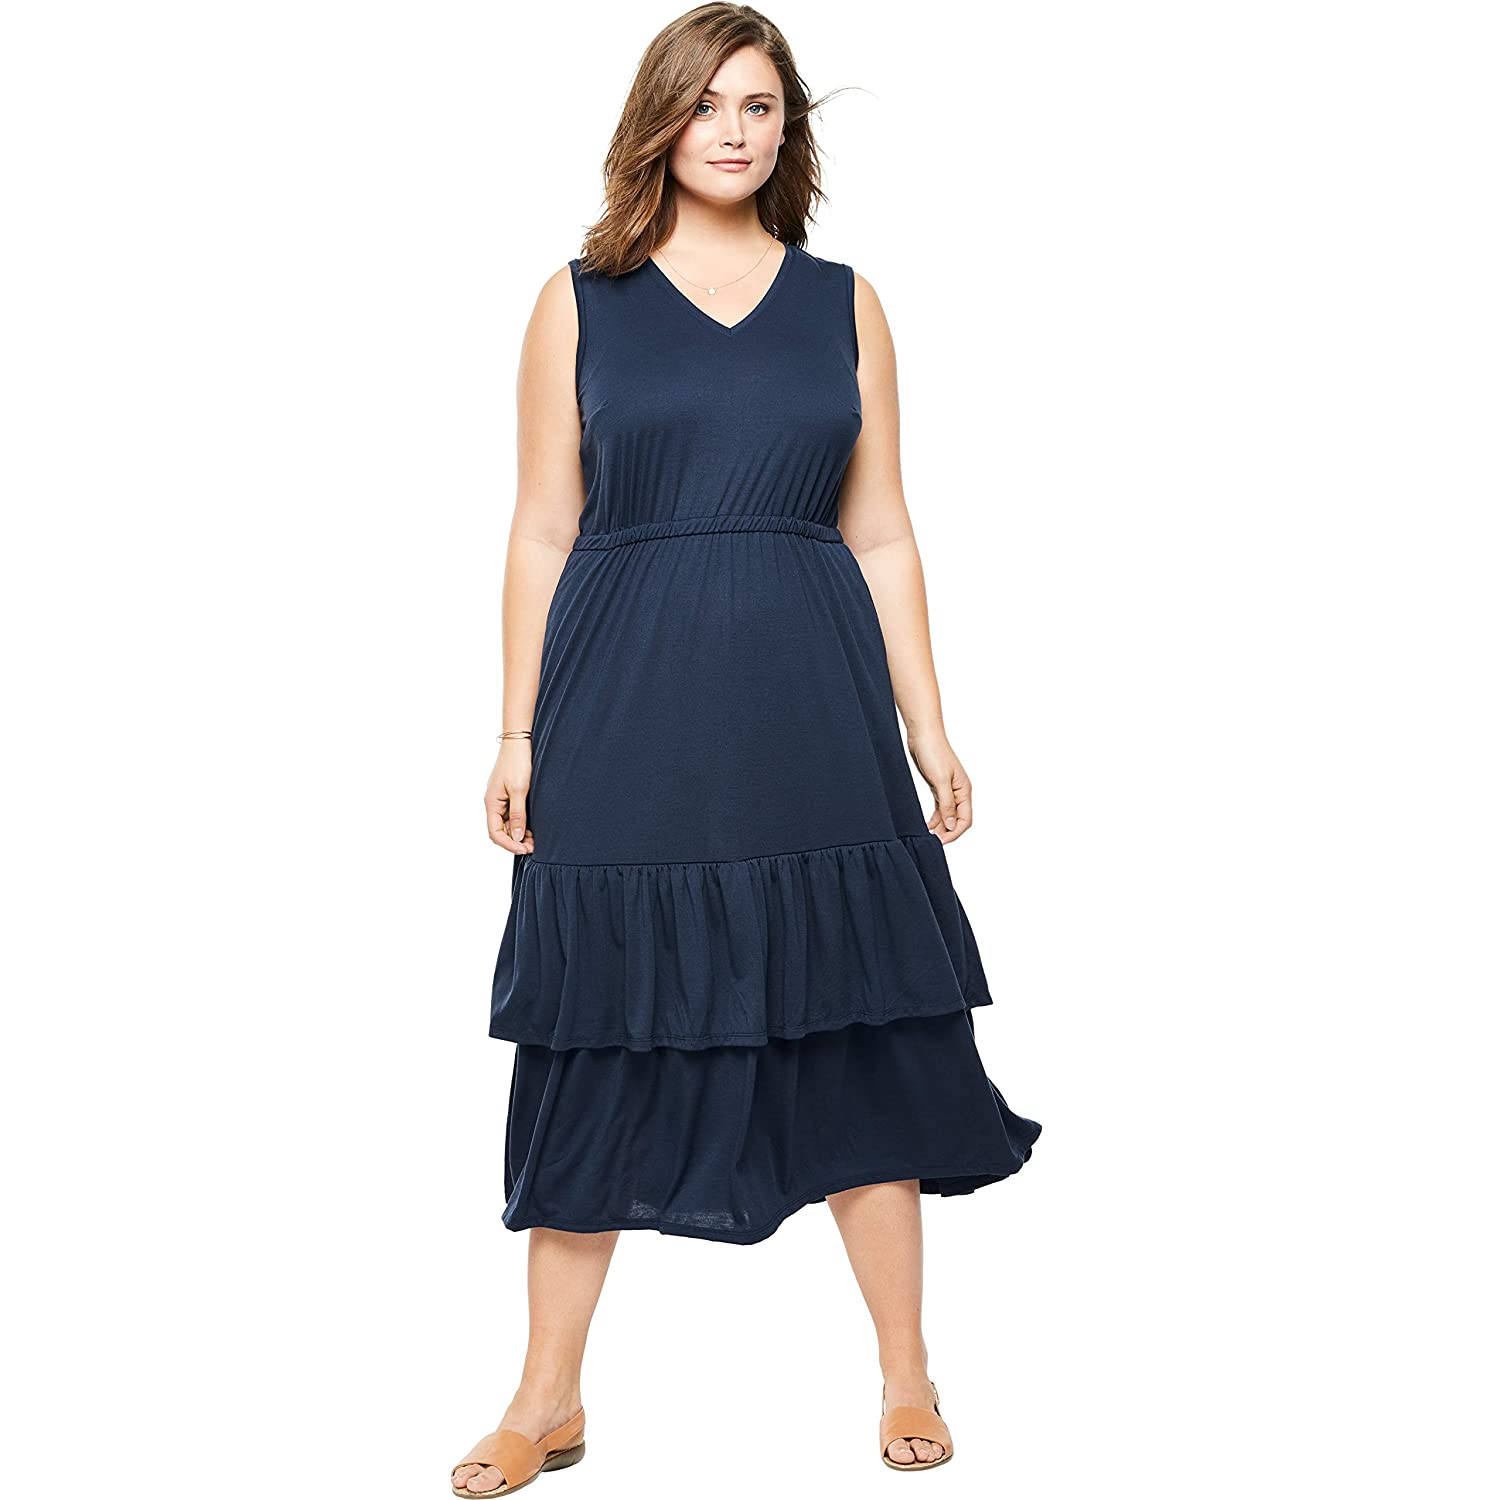 6e7b6c05e1010 Woman Within Women's Plus Size Tiered Hem Sleeveless Dress